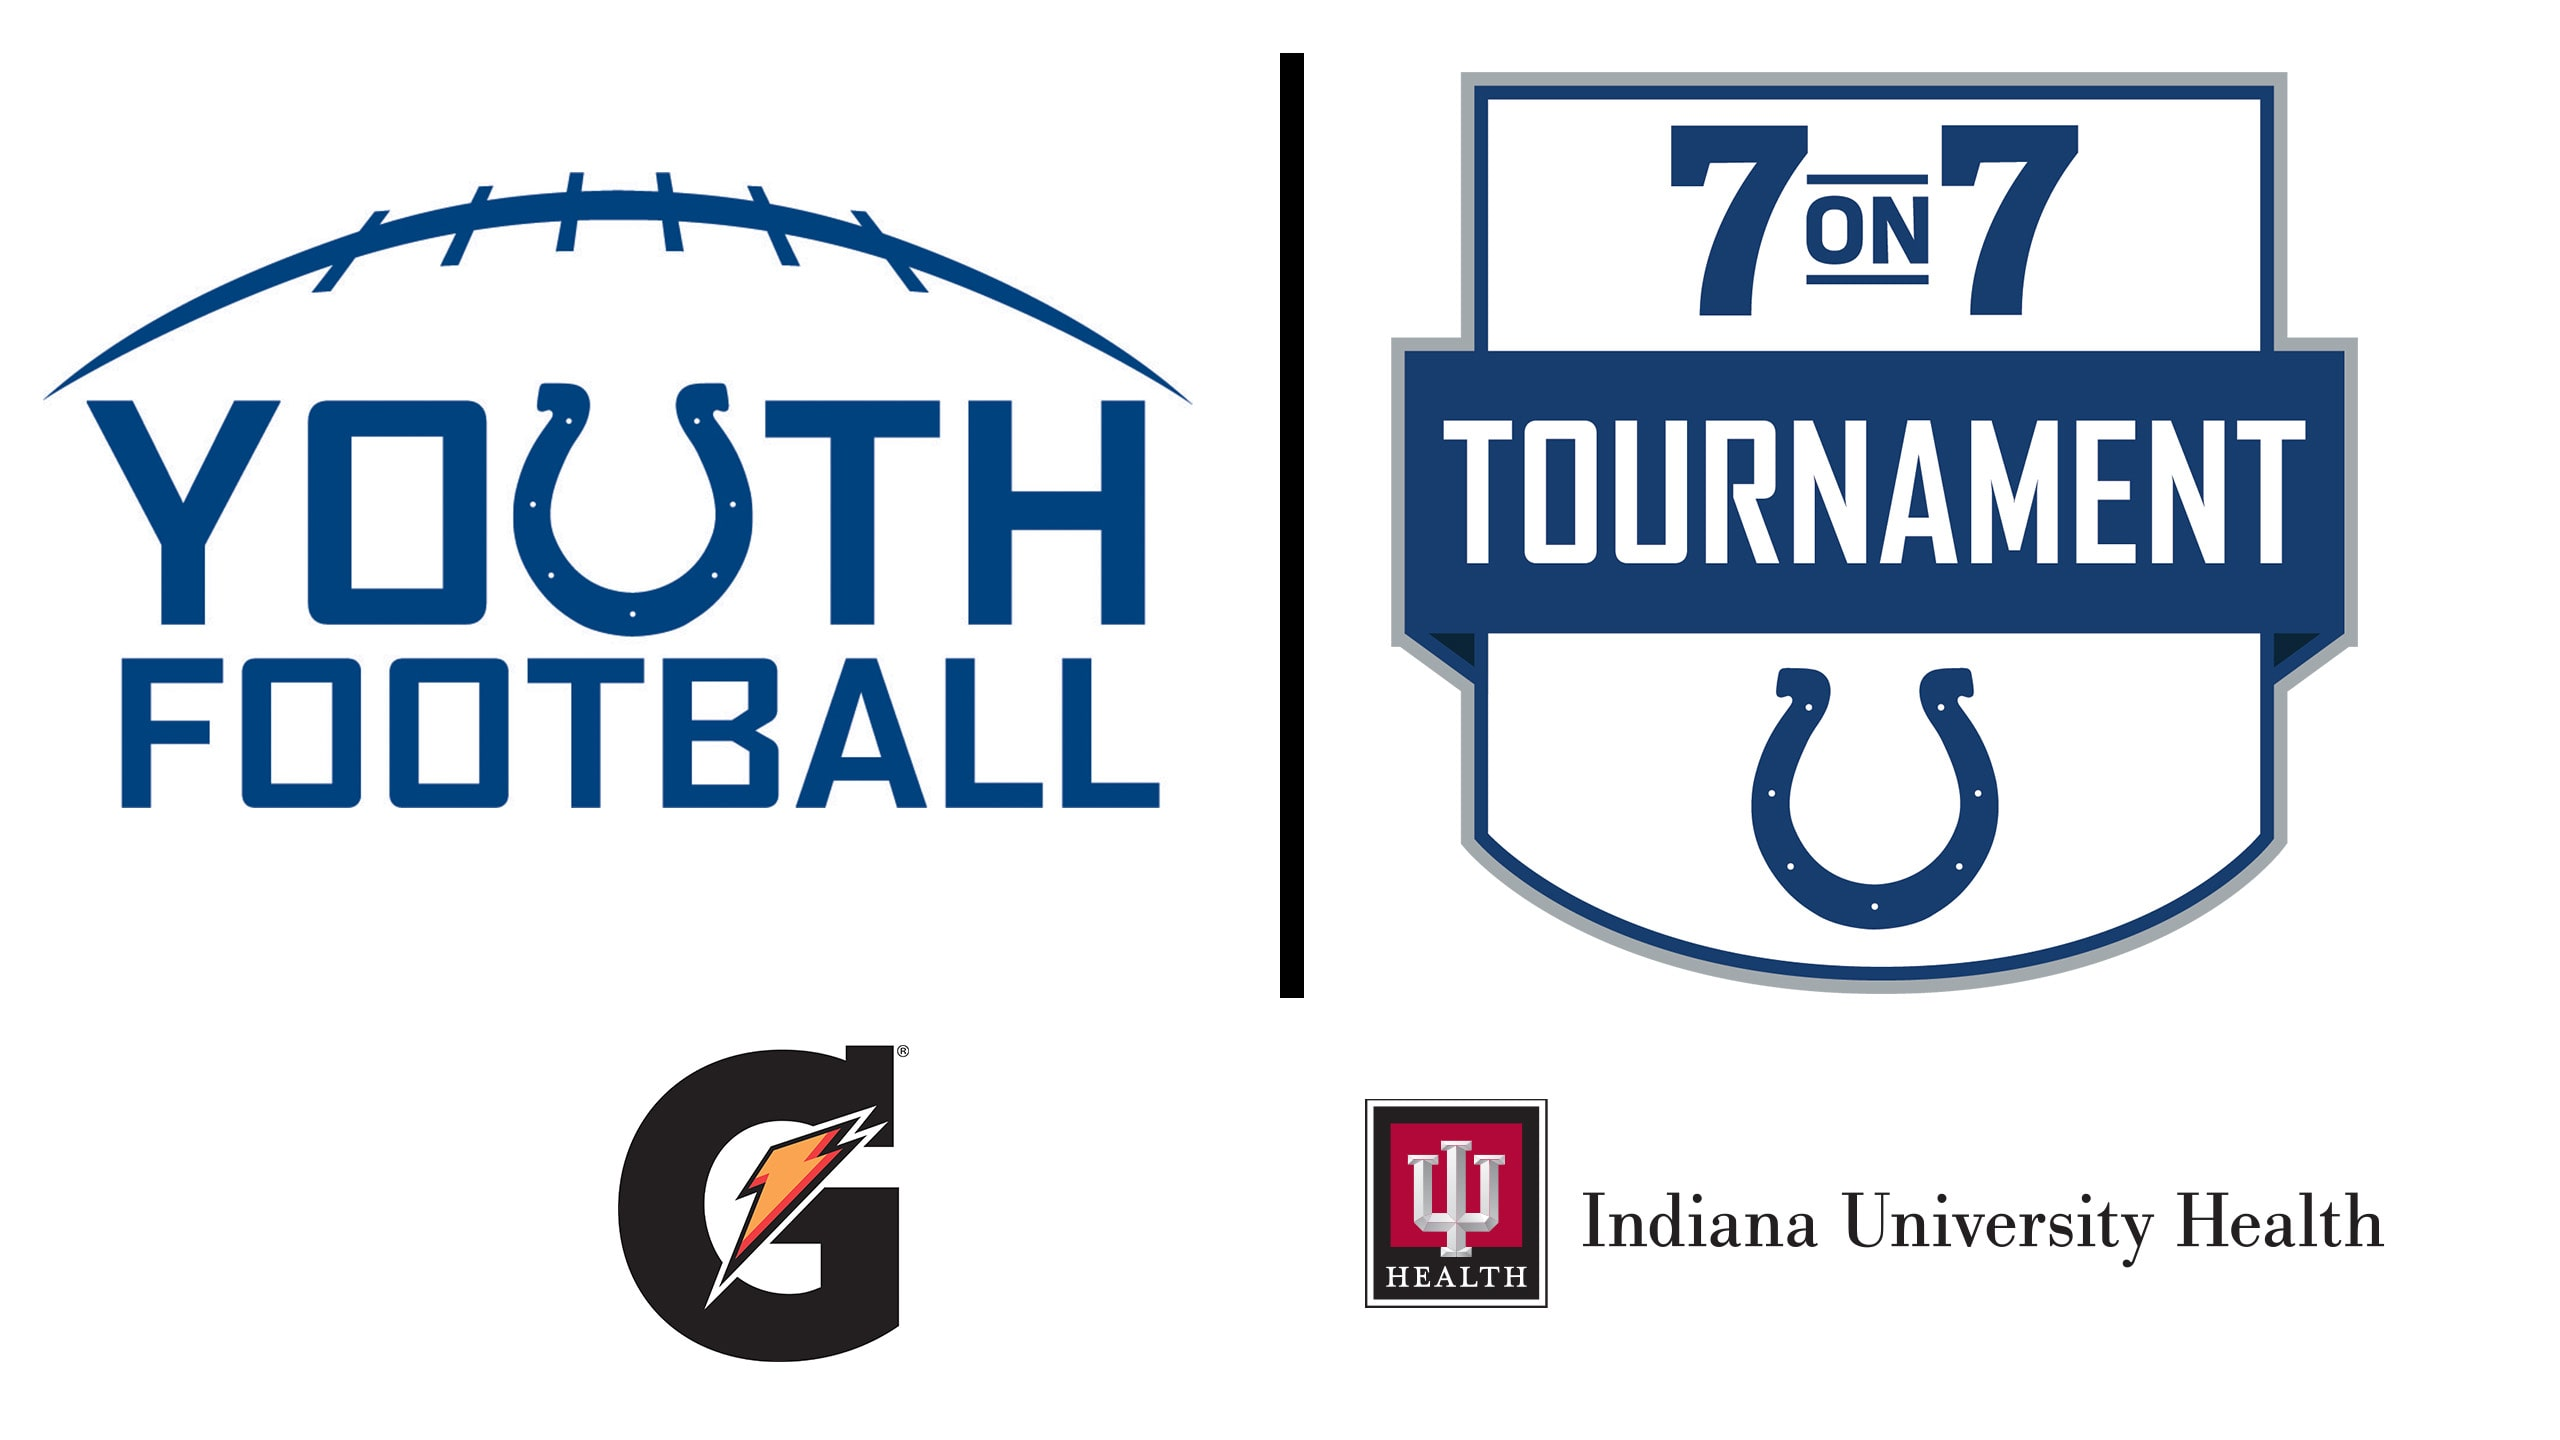 7-on-7 Tournament